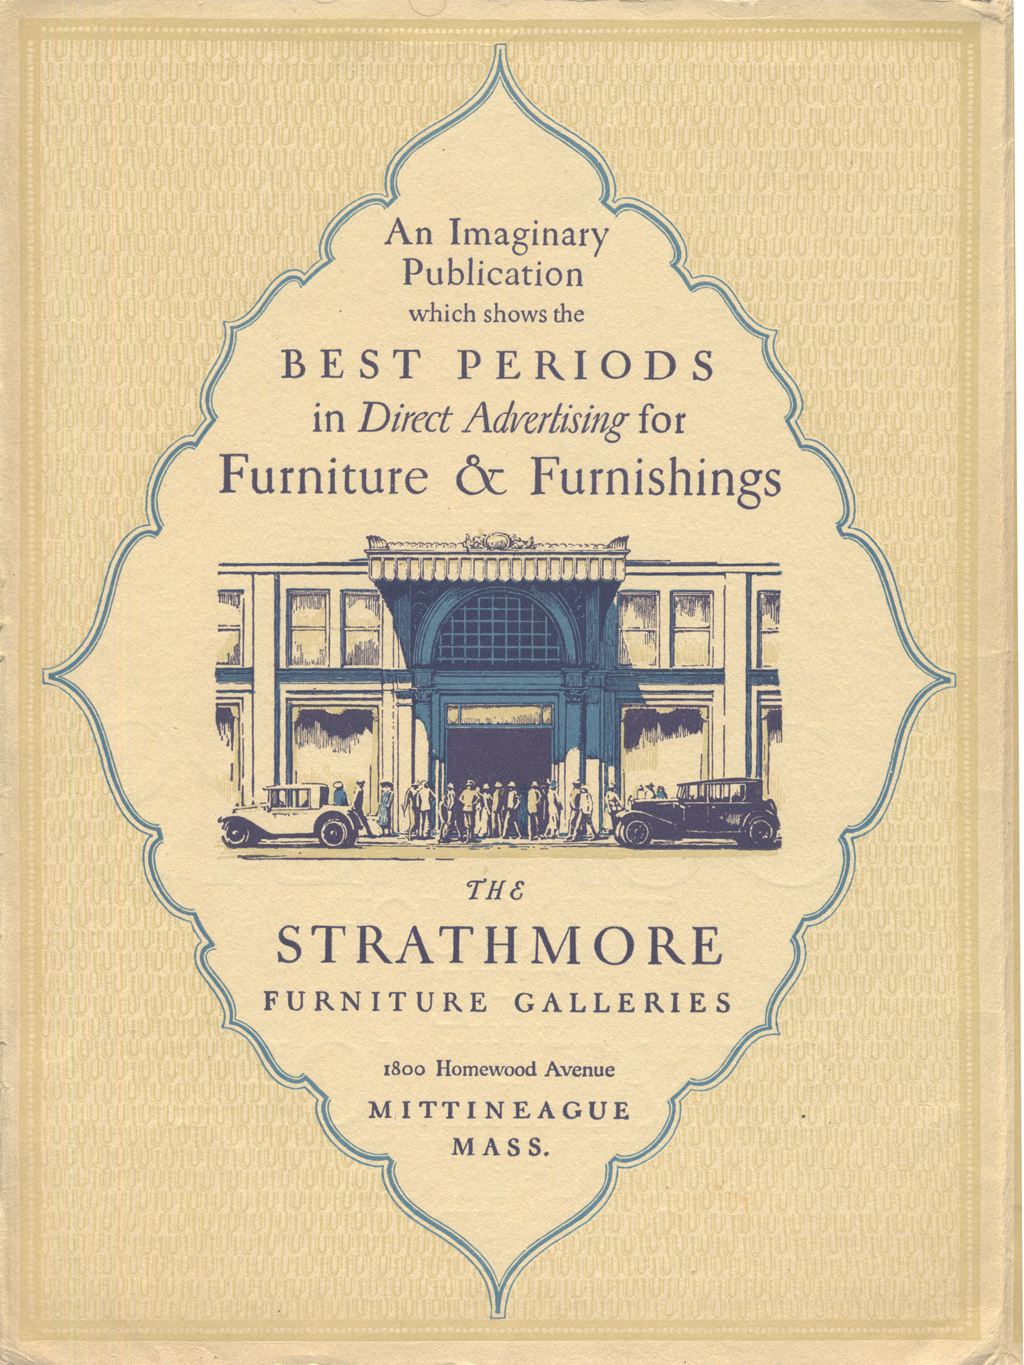 Interior page from Journeys through the Strathmore Furniture Galleries (Strathmore Paper Co., 1923). Design by W.A. Dwiggins.